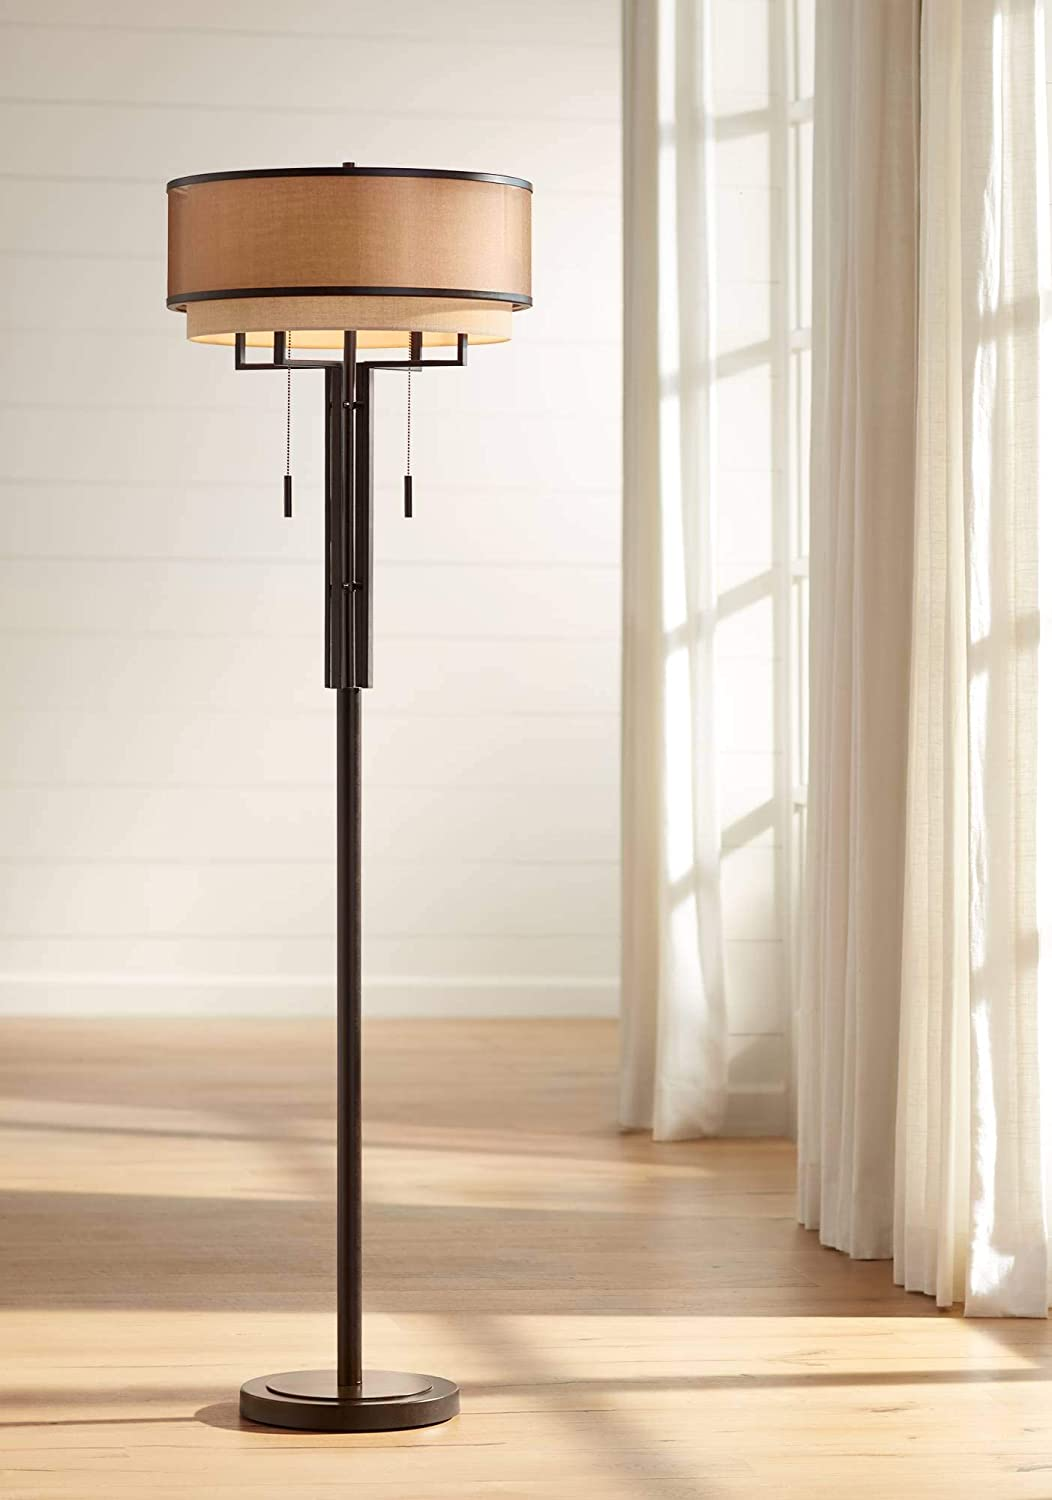 Alamo Modern Floor Lamp Industrial Bronze Sheer Brown Organza and Linen Double Drum Shade for Living Room Reading – Franklin Iron Works